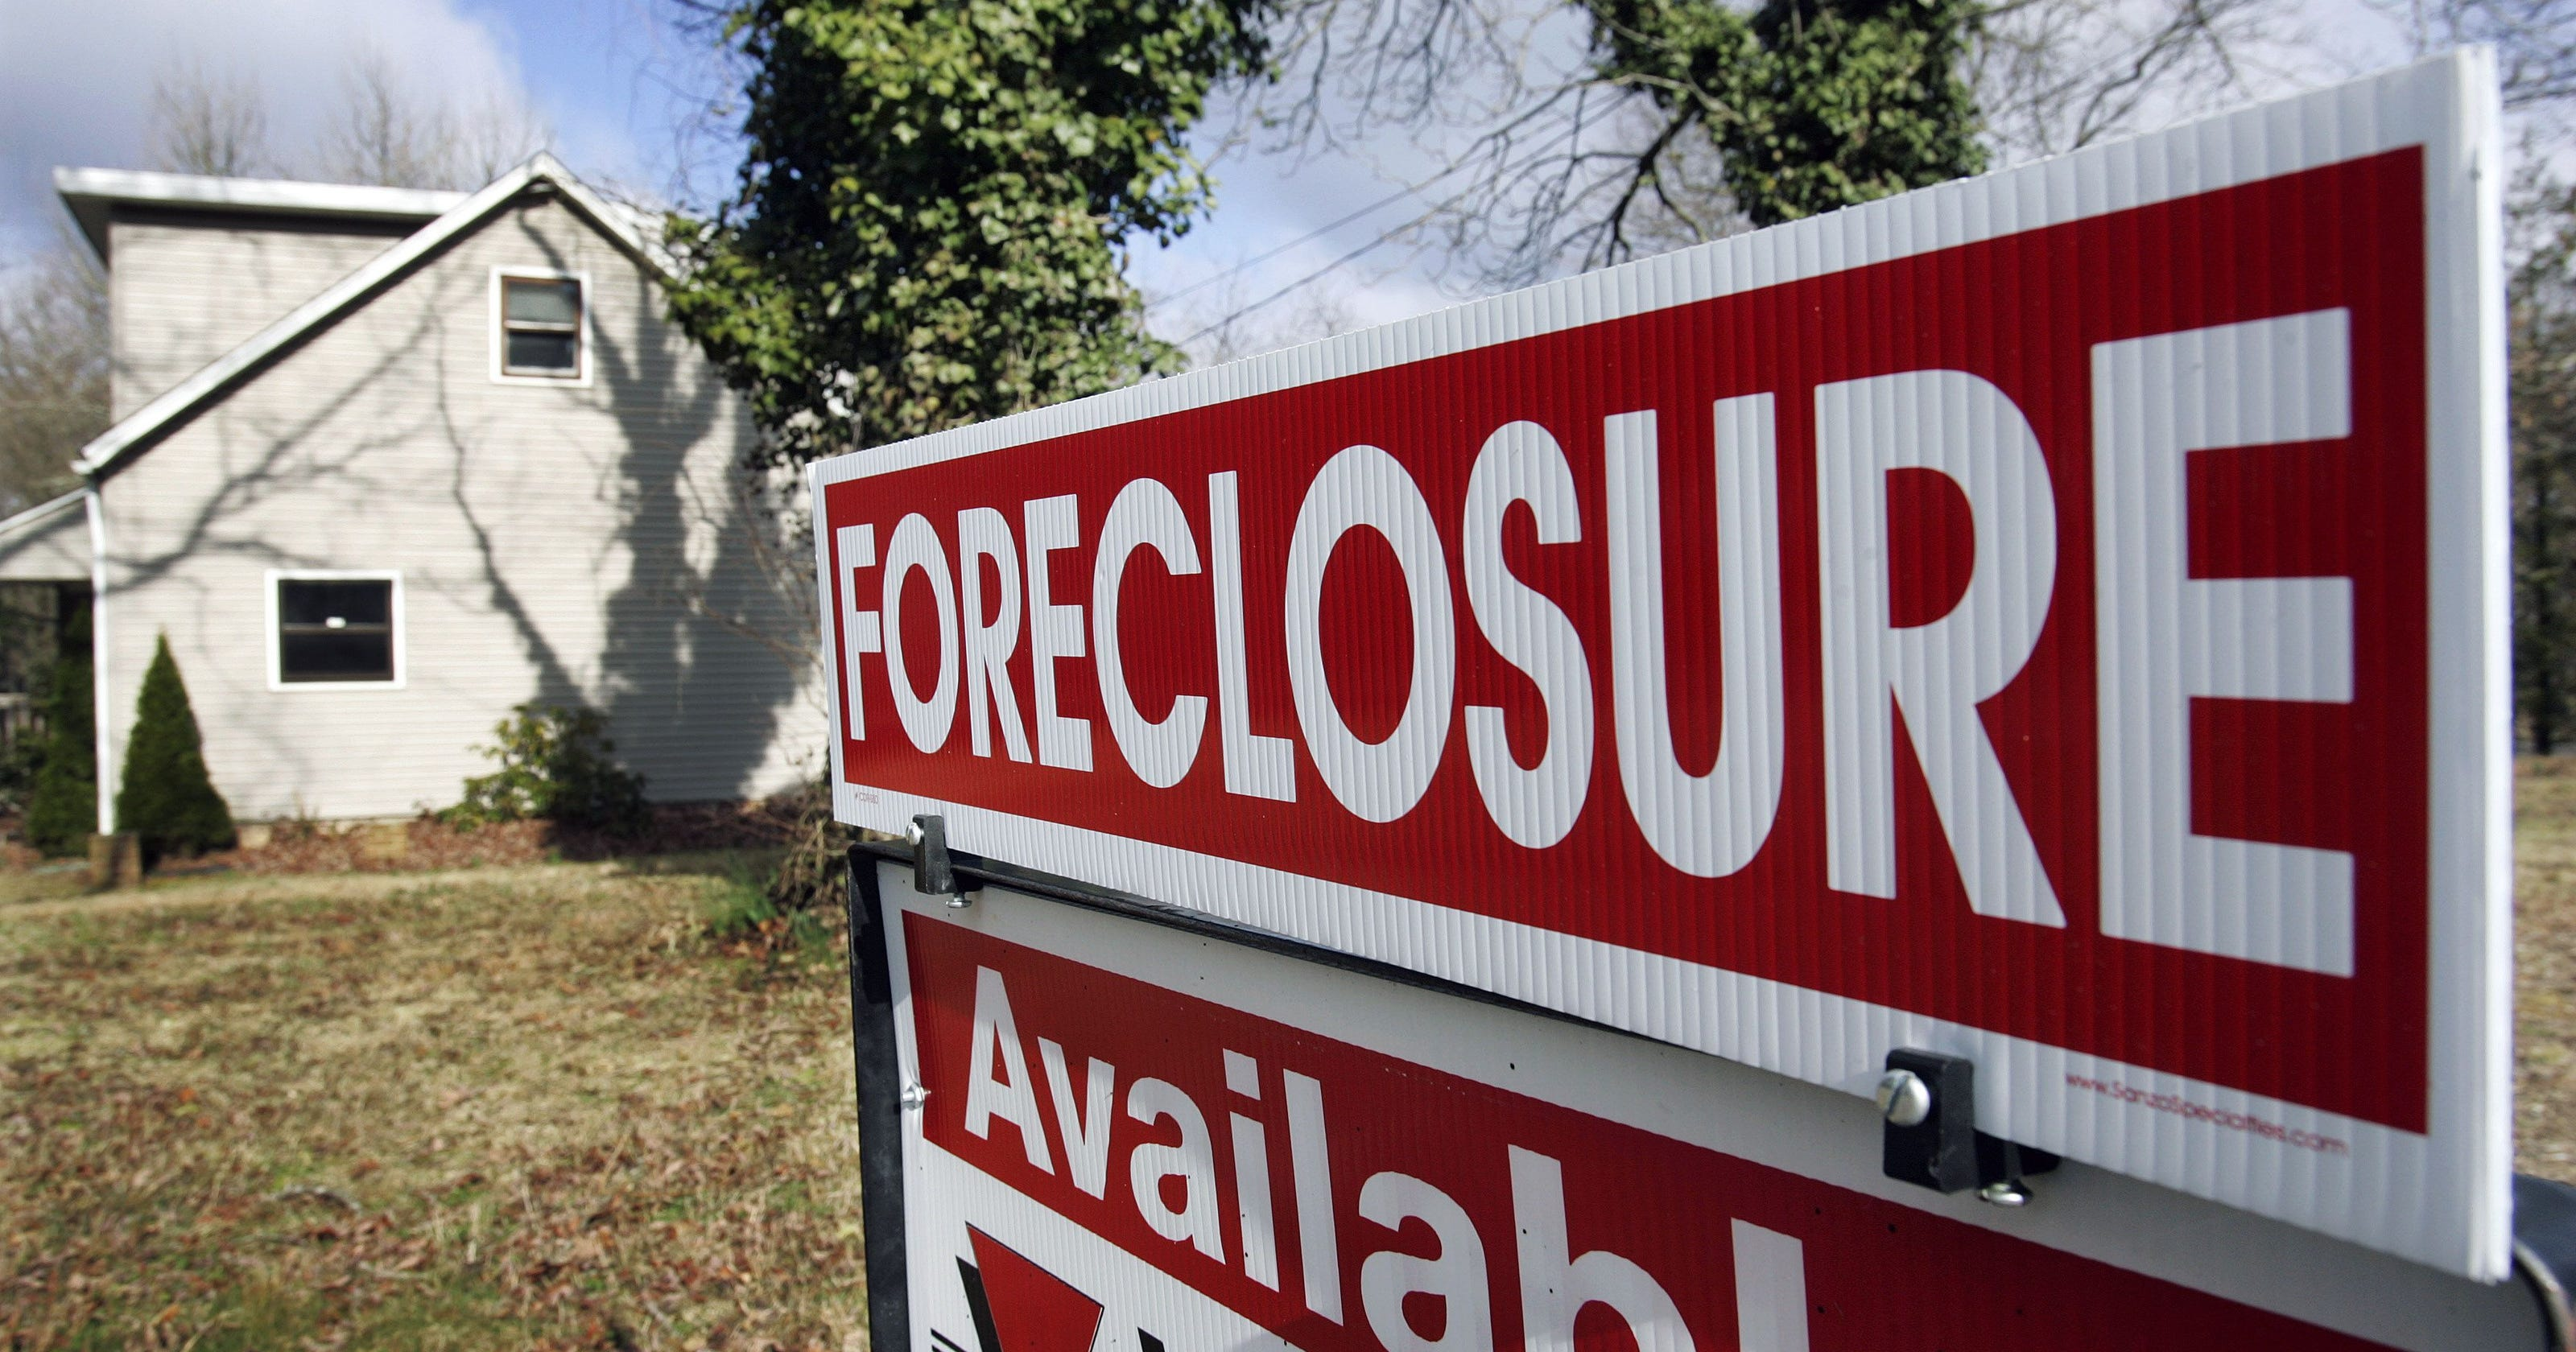 Op-ed: Maintain foreclosure notices in local newspapers